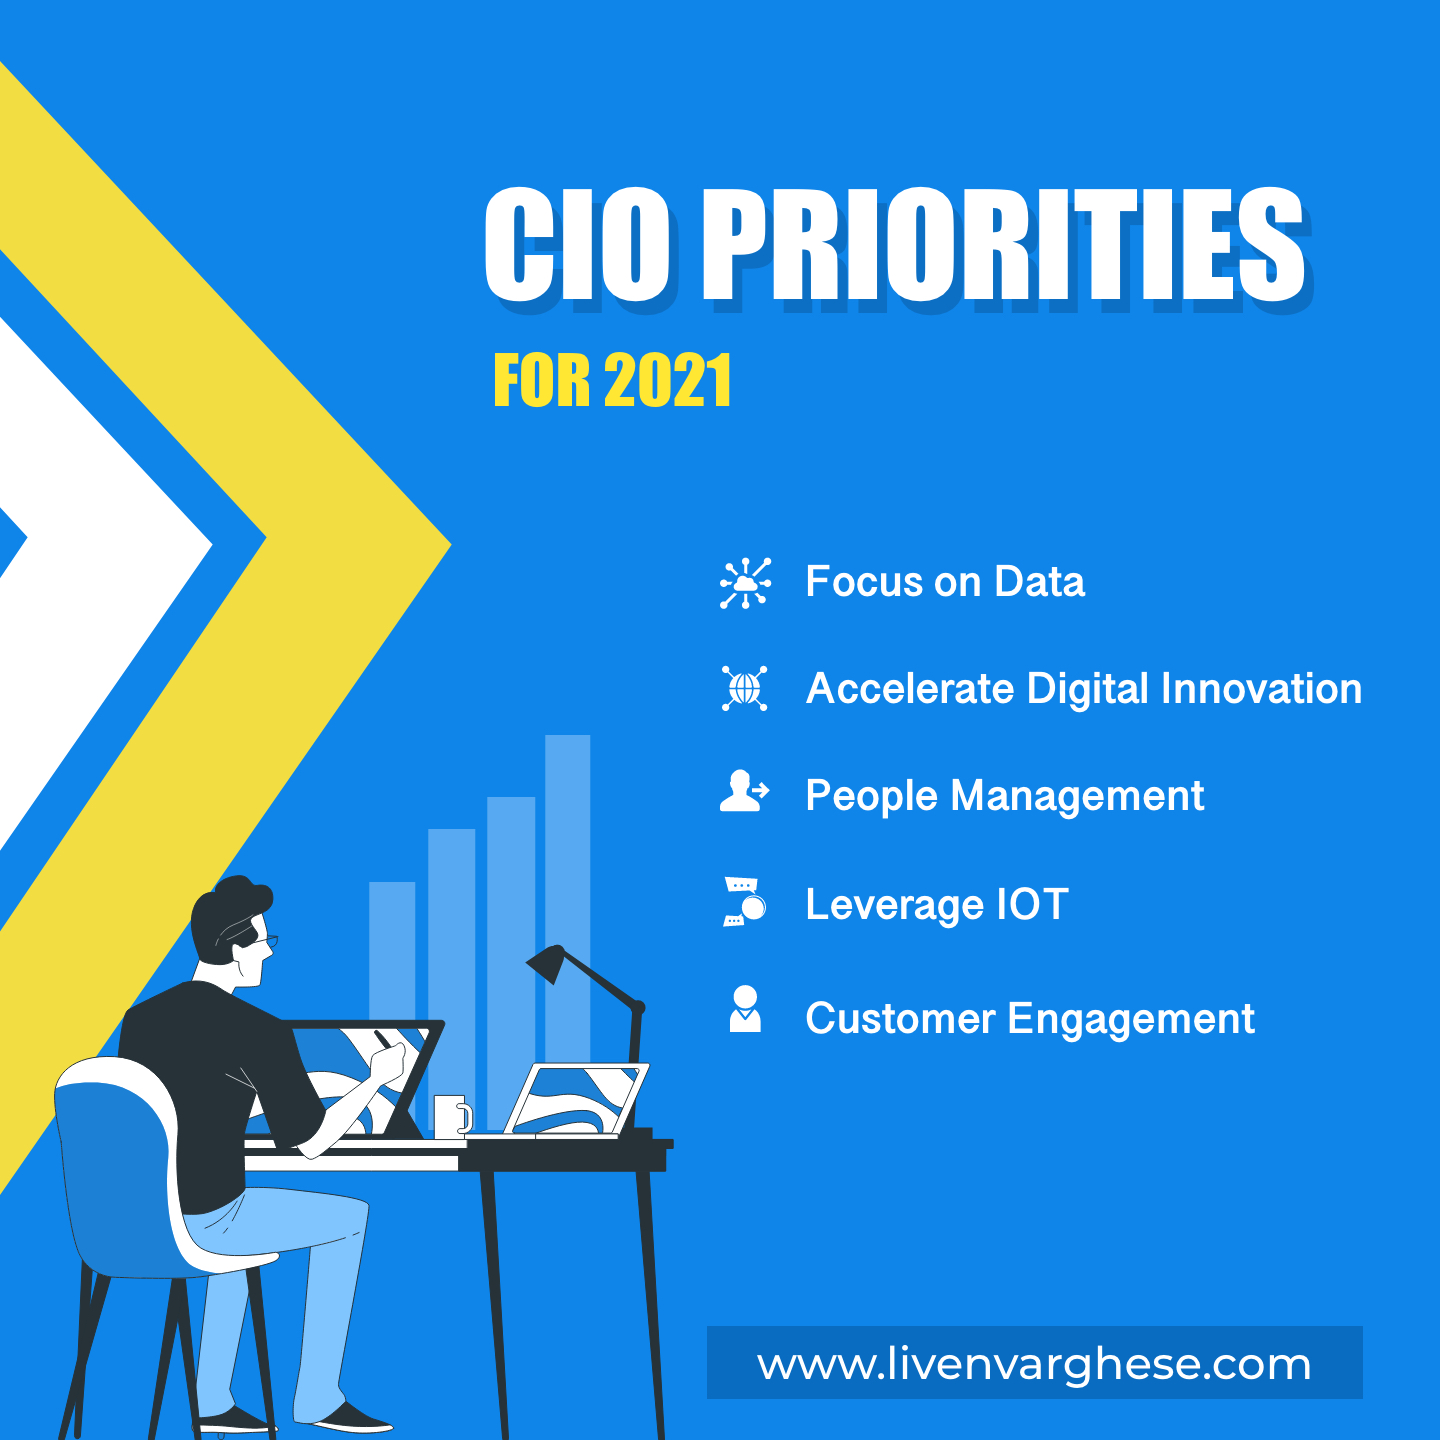 CIO Priorities for 2021